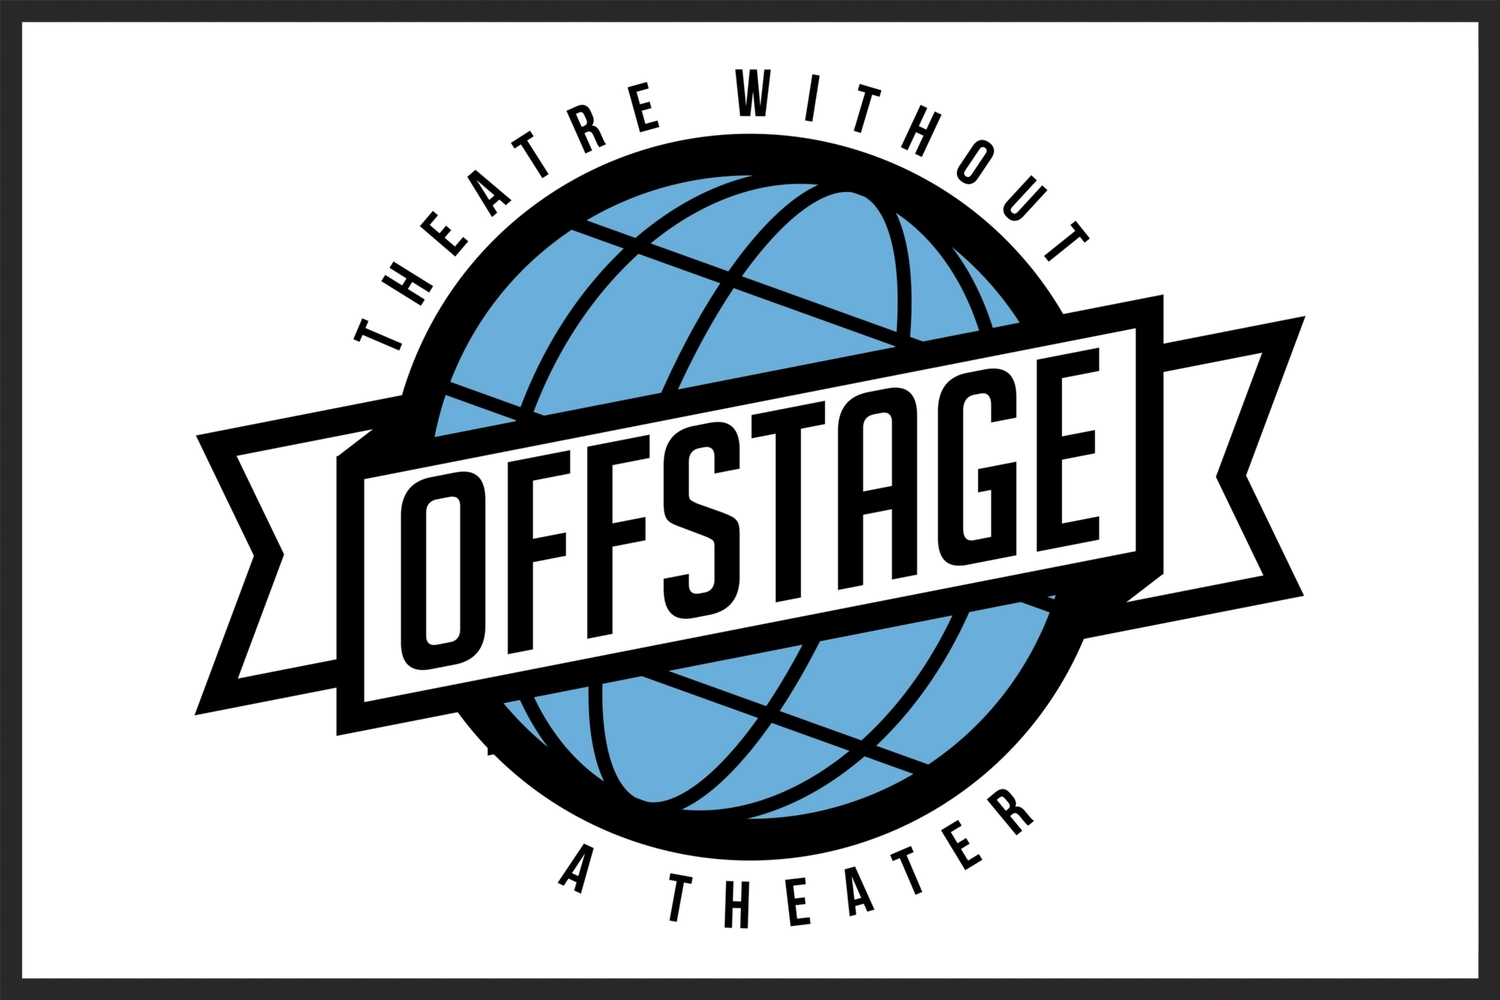 Offstage Theatre